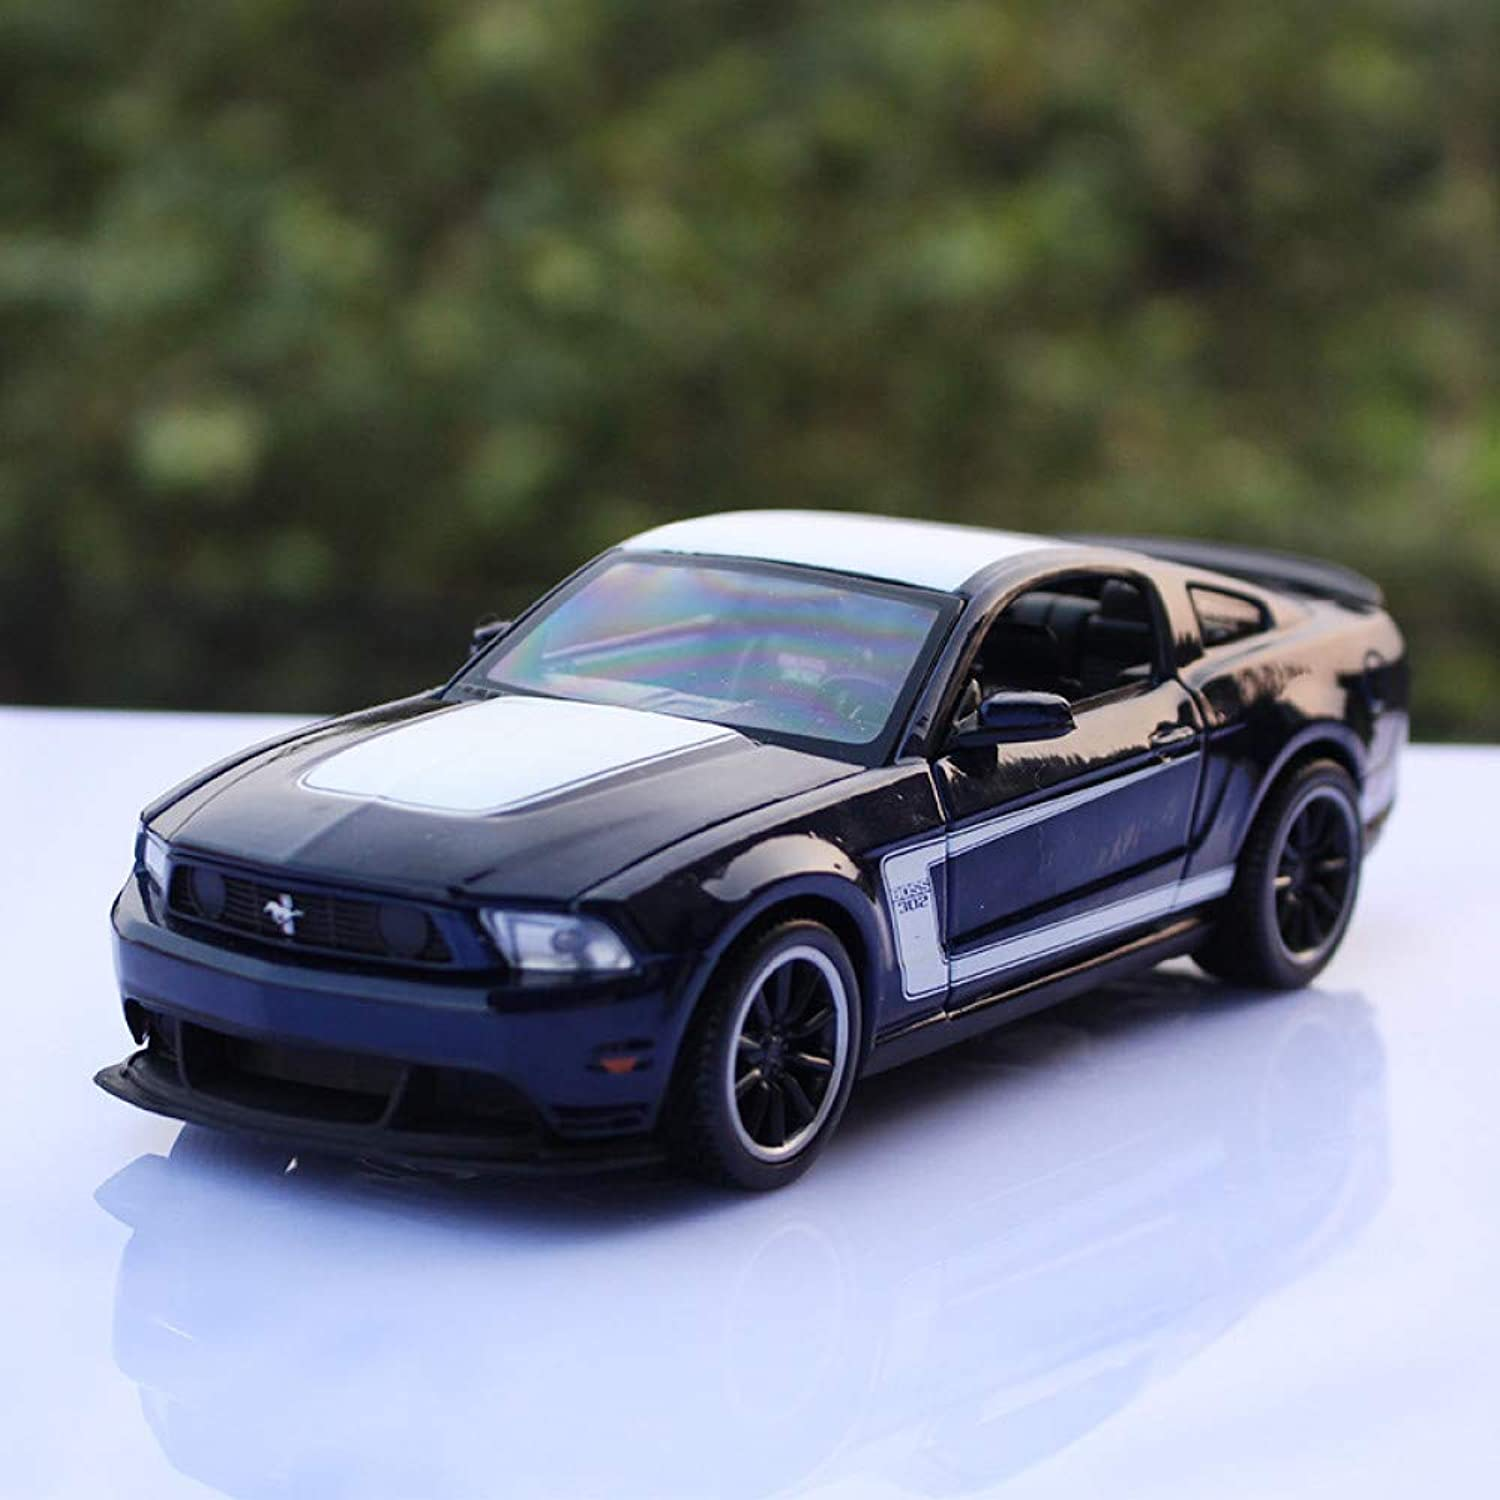 QAQW 1 24 Ford Mustang Boss302 Festival Collection Gift bluee Alloy Car Model